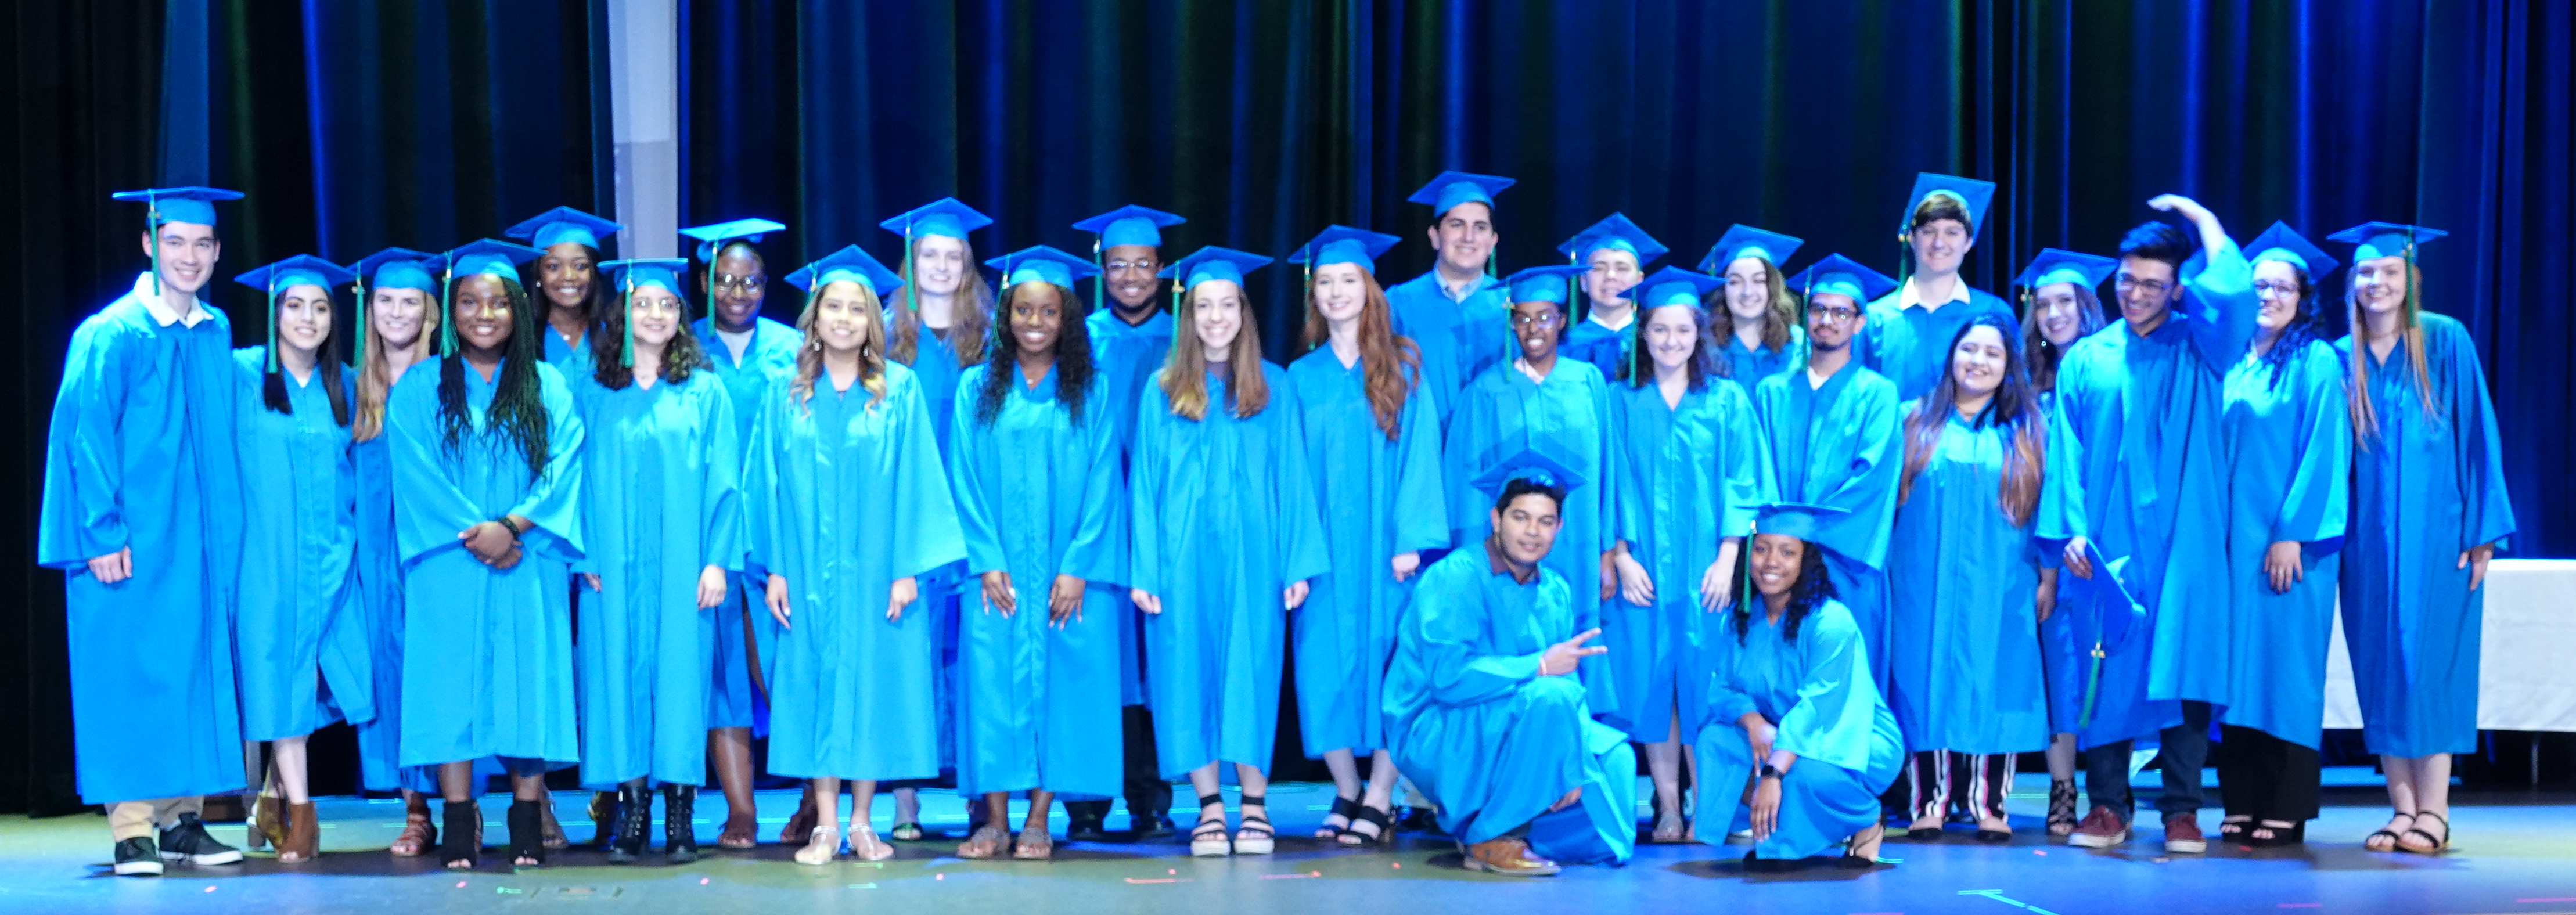 The 27-member Student Scholars Class of 2019 stand together on stage at Ashby Ponds following the community's scholarship awards ceremony on May 20.